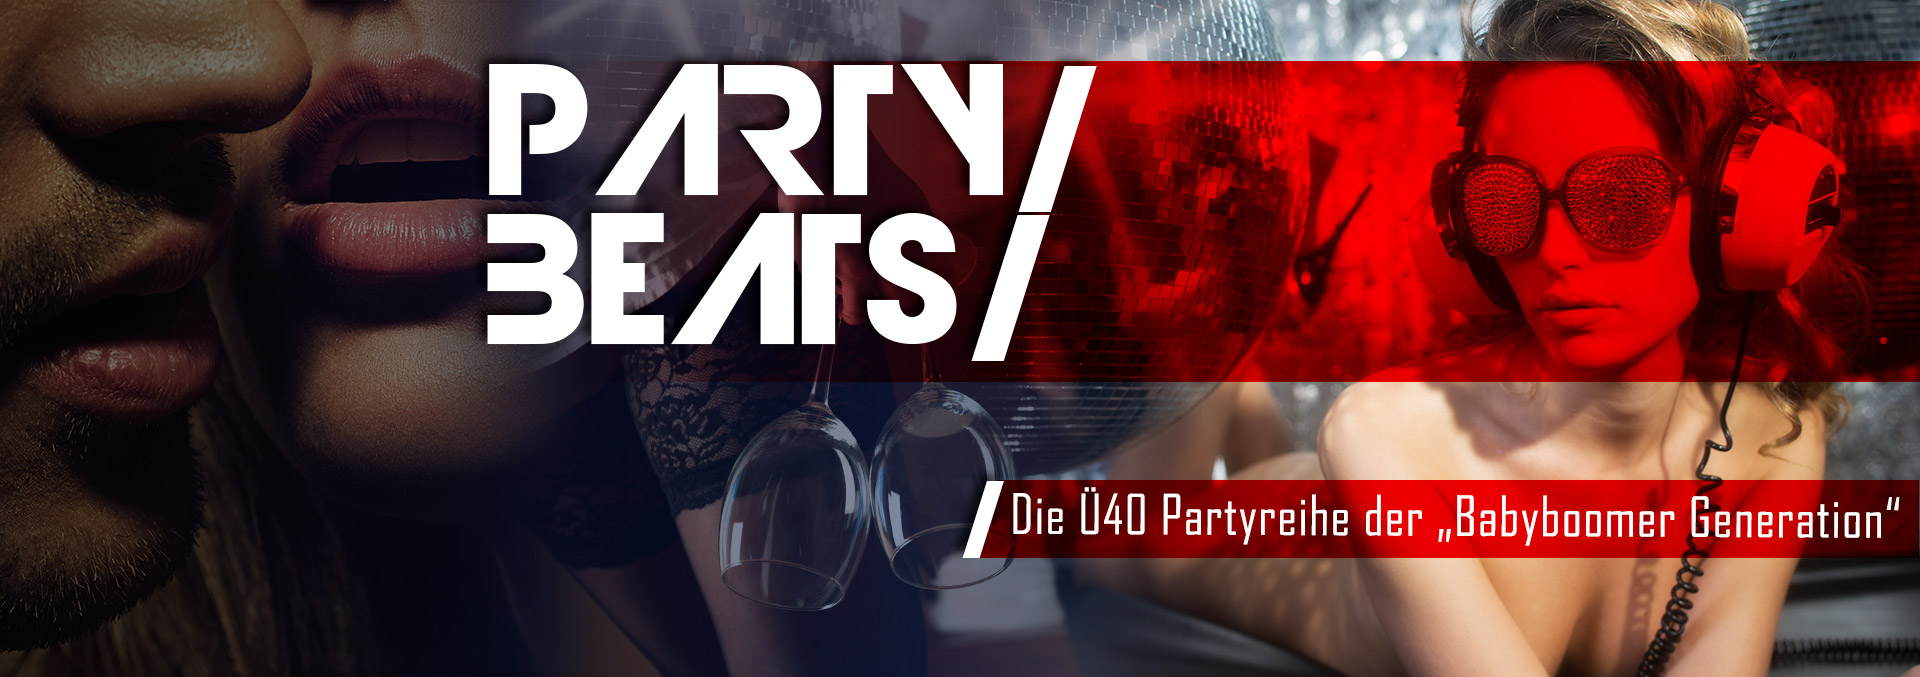 Party Beats Waldhof II